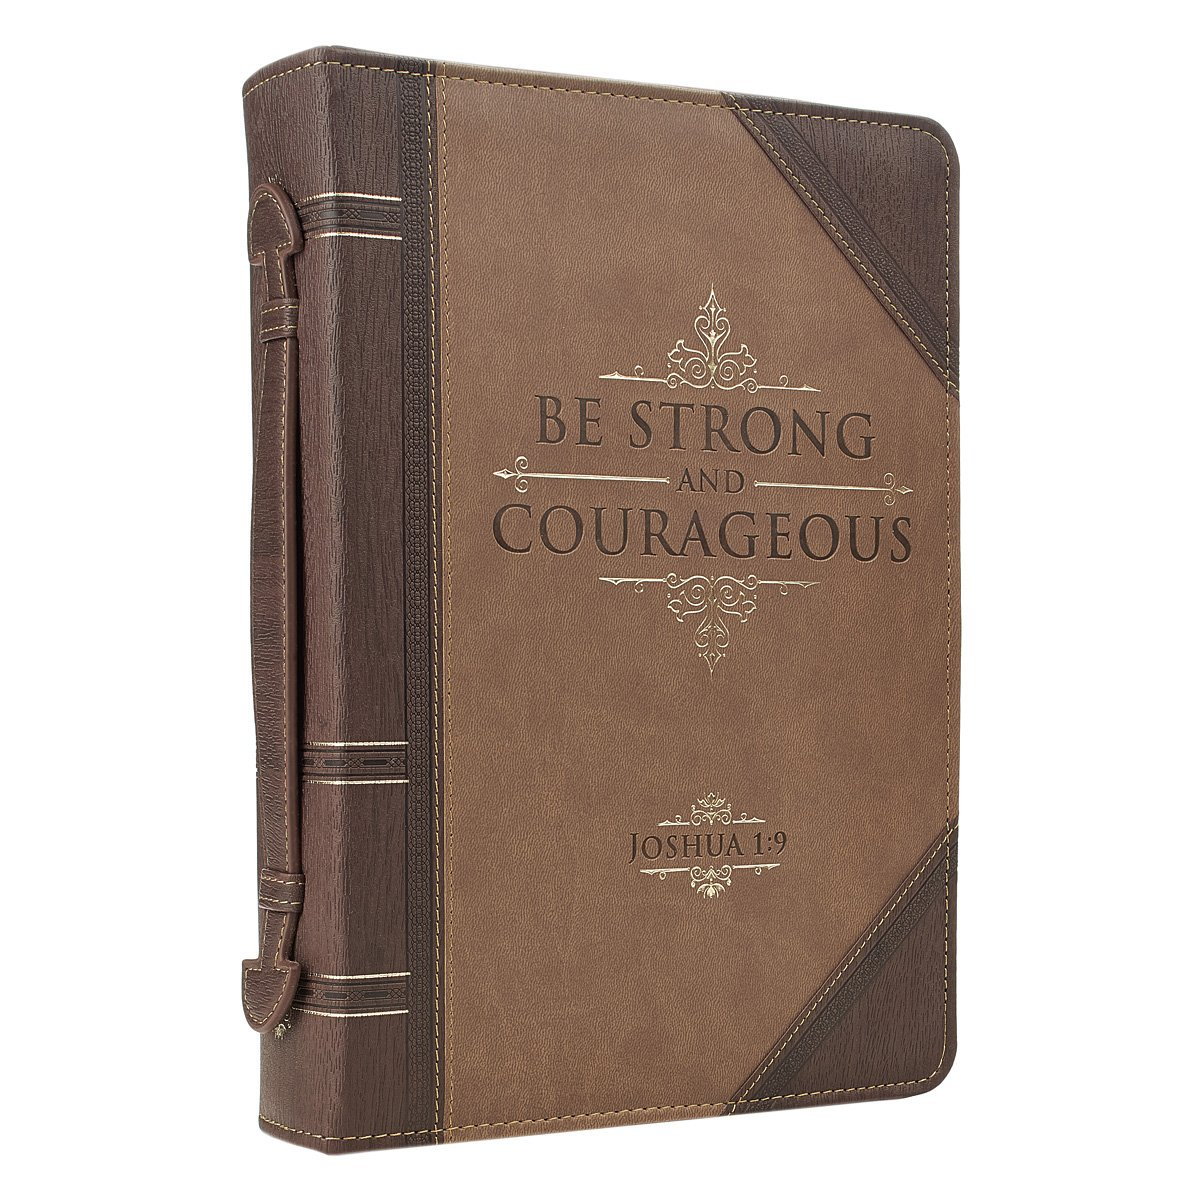 Antique Book ''Be Strong & Courageous'' Bible / Book Cover - Joshua 1:9 (Large)